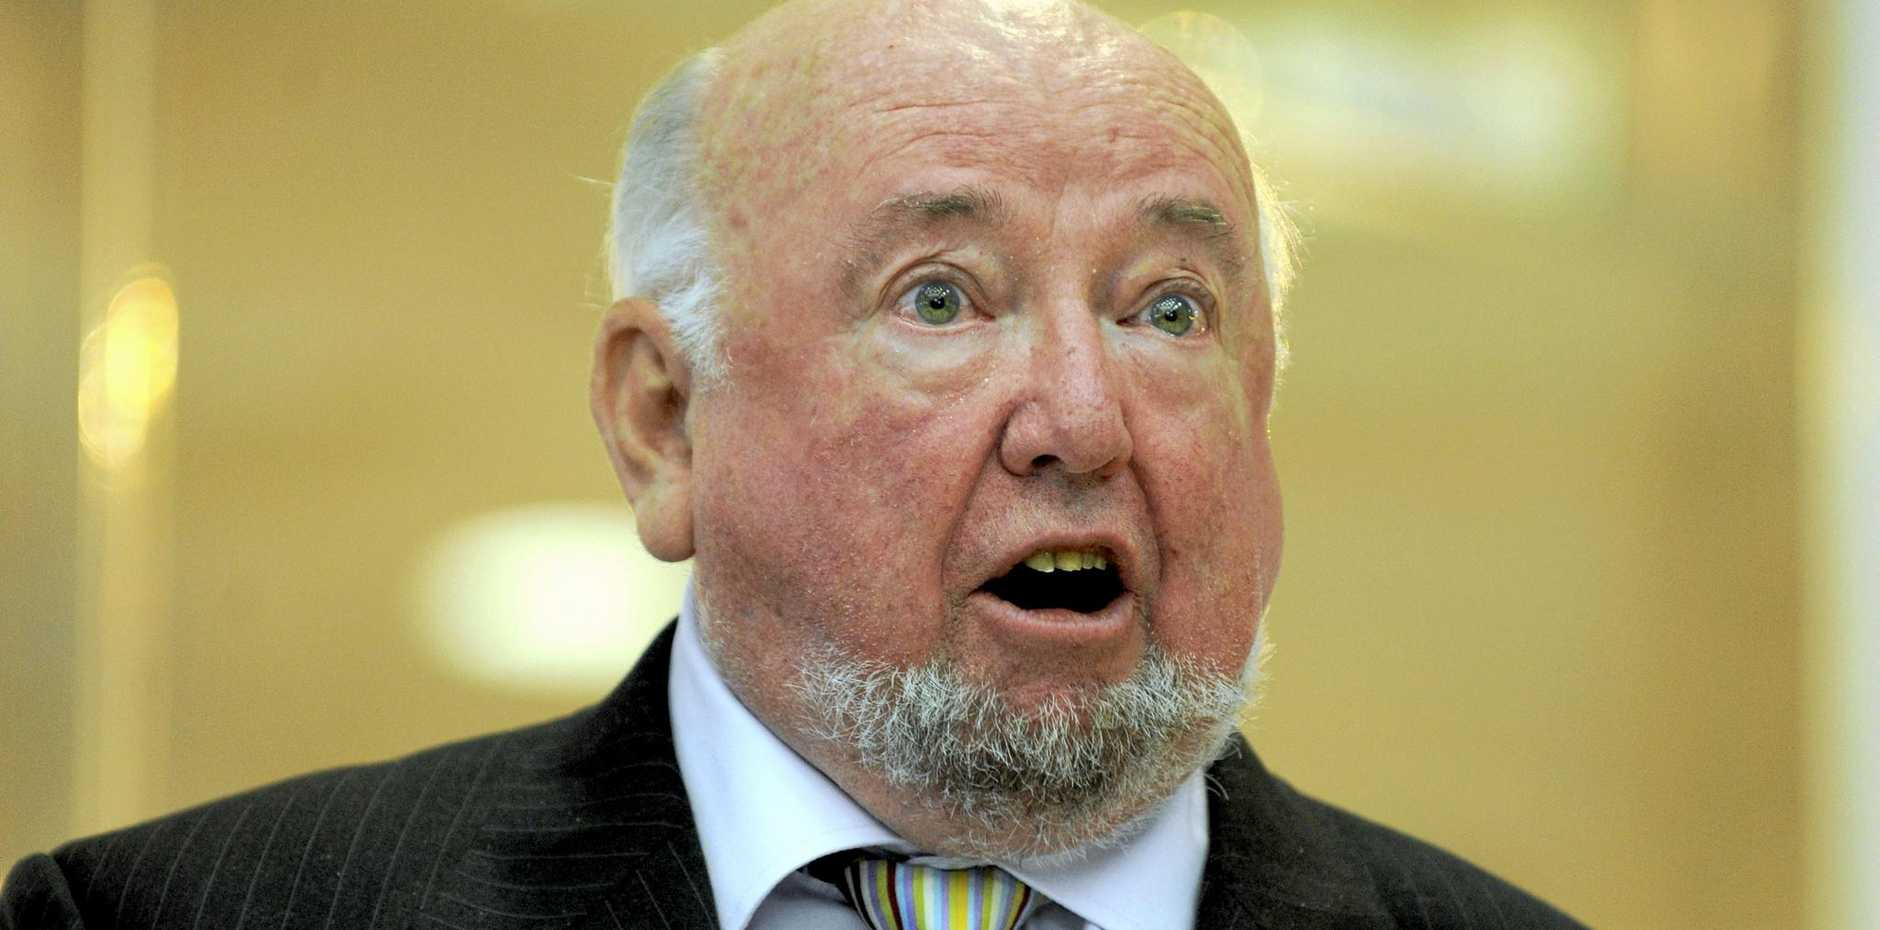 NICE BLOKE: Author Thomas Keneally wasn't too famous to respond to an email from Ashley